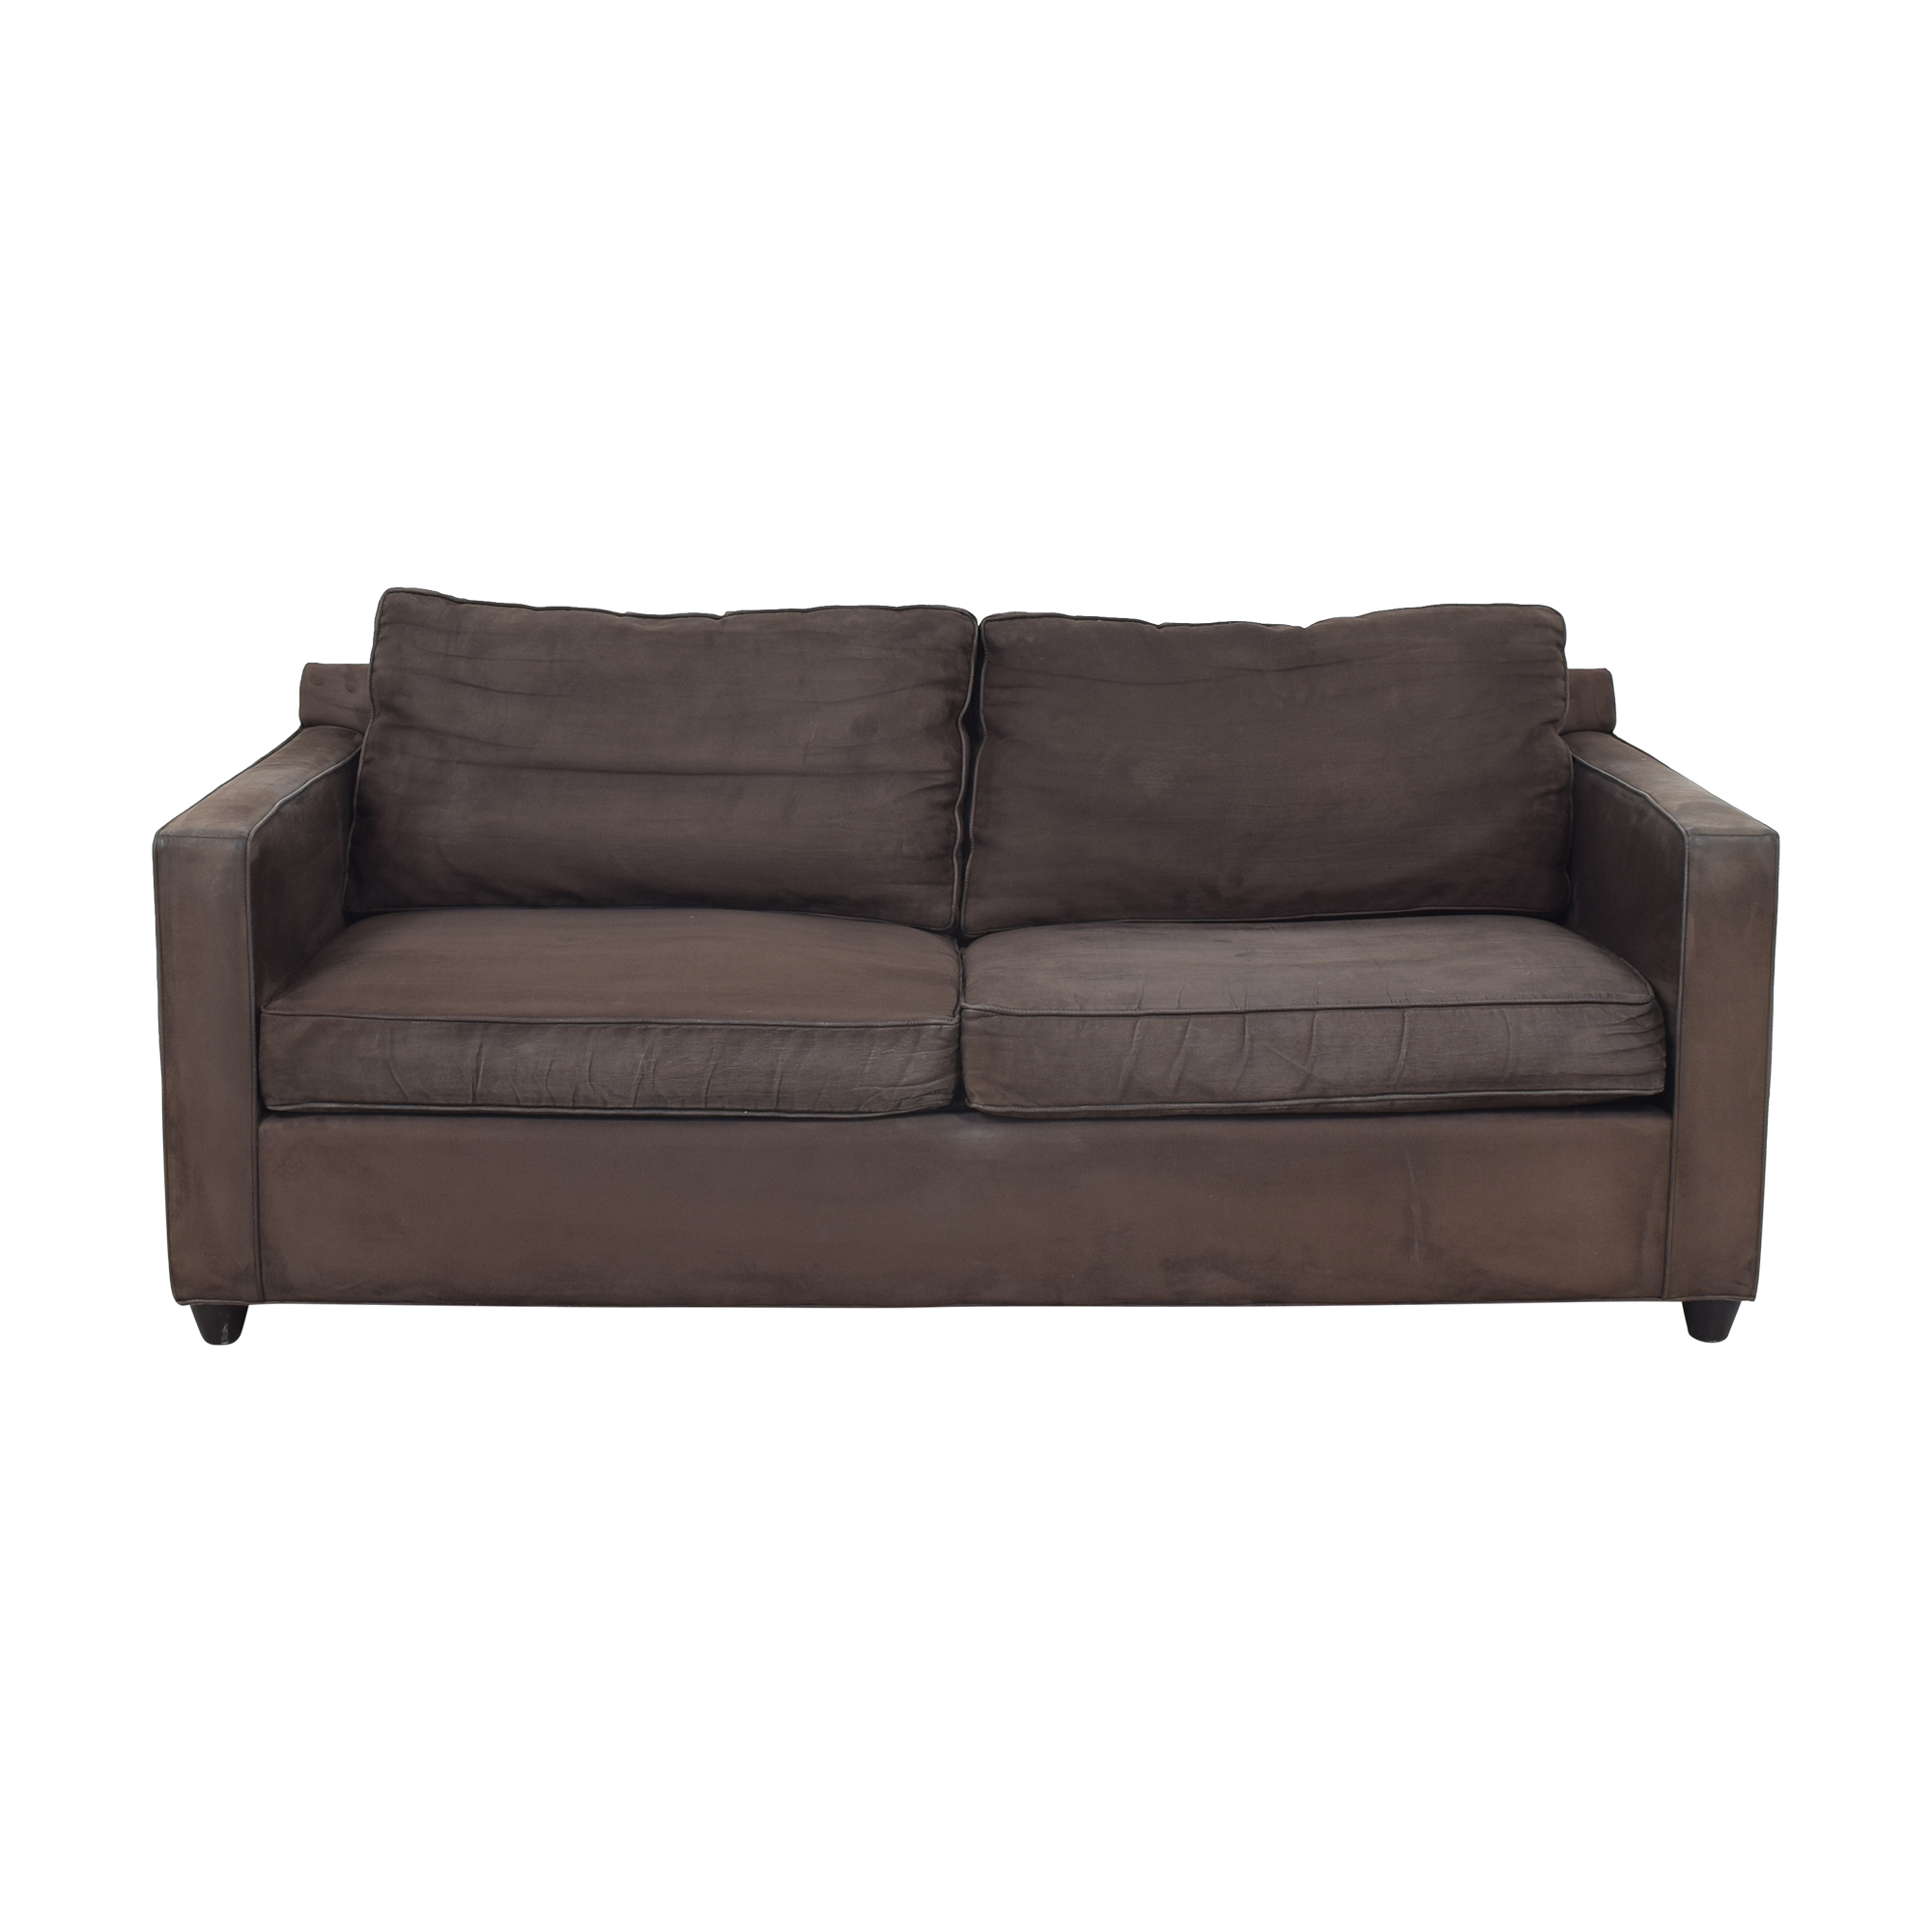 Crate & Barrel Crate & Barrel Troy Sofa ct